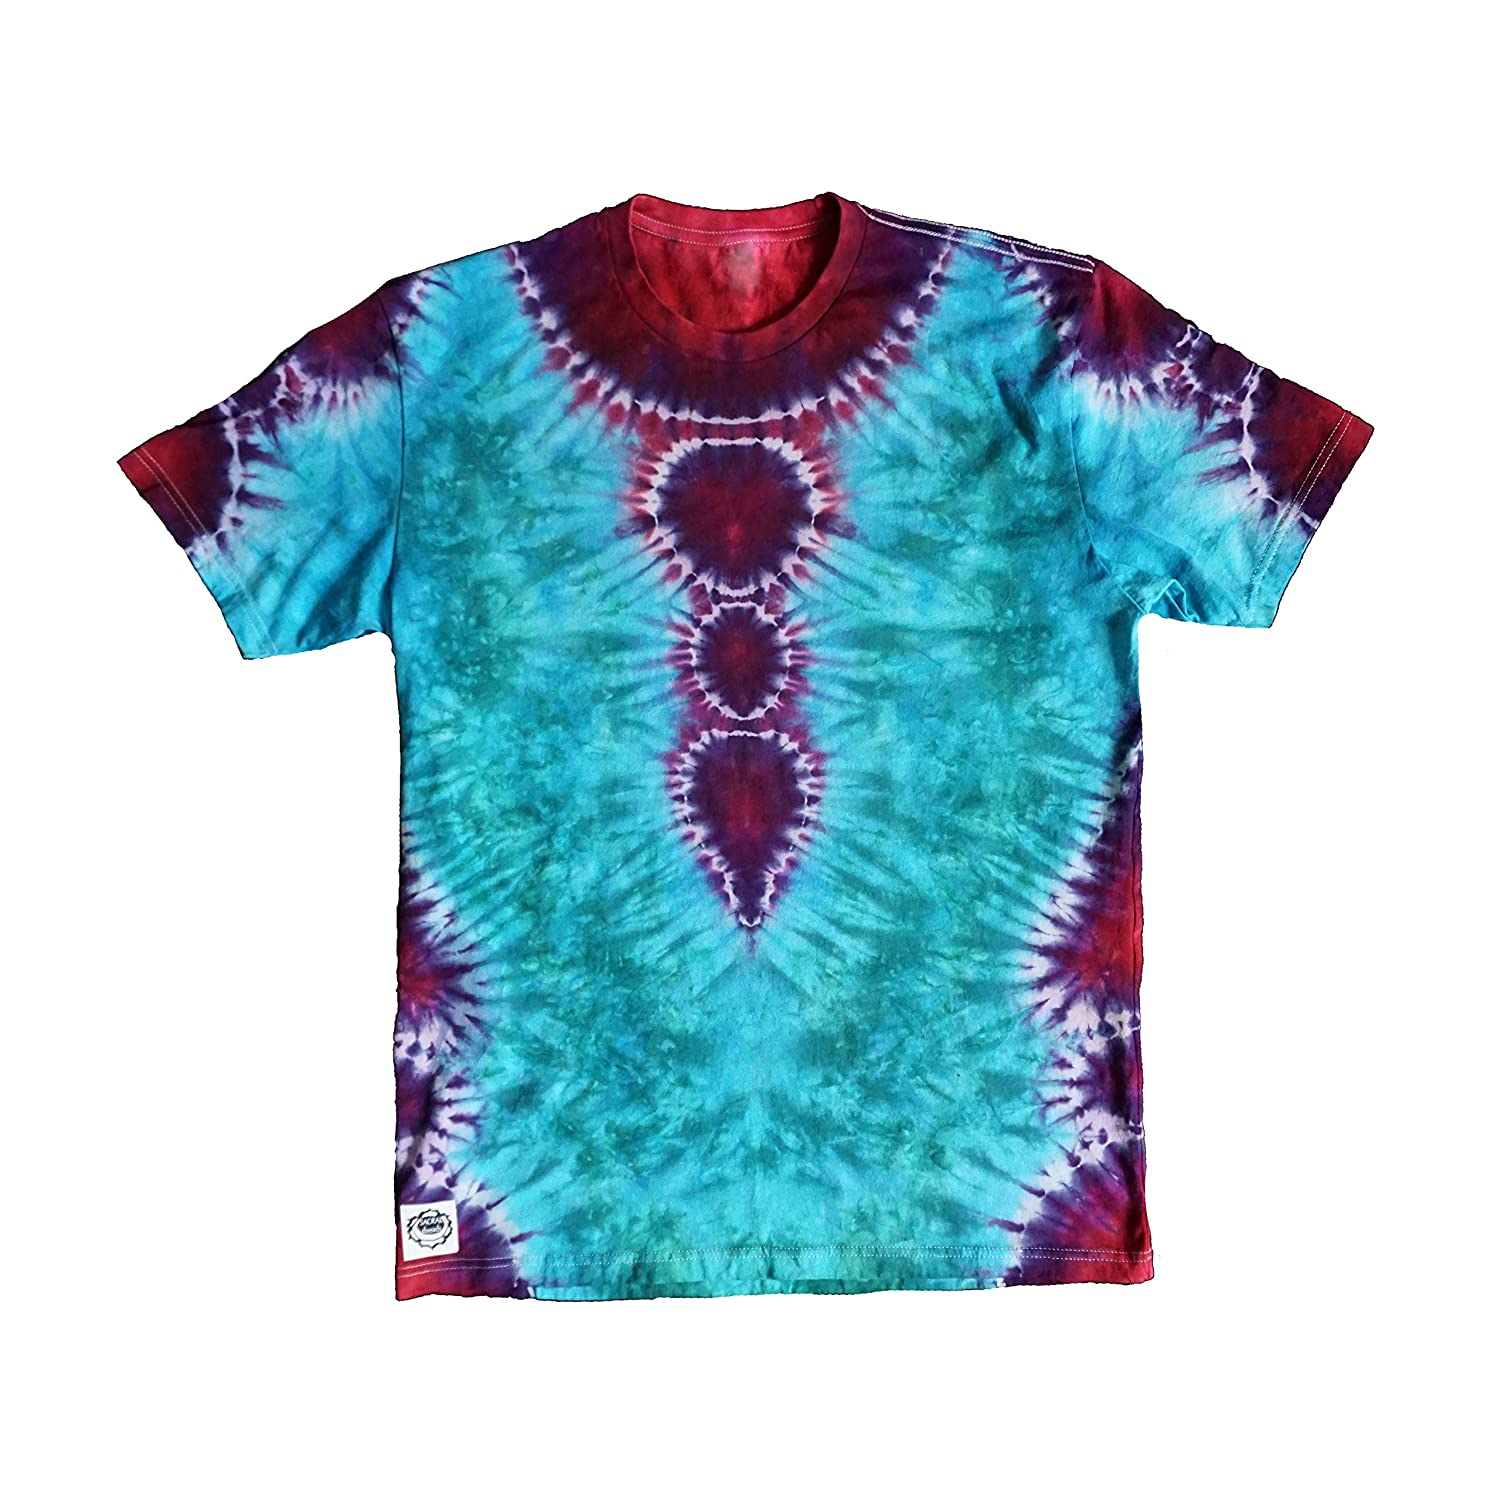 SACRAL threads Tie Dye Regular Fit Tee in Mens Large Turquoise